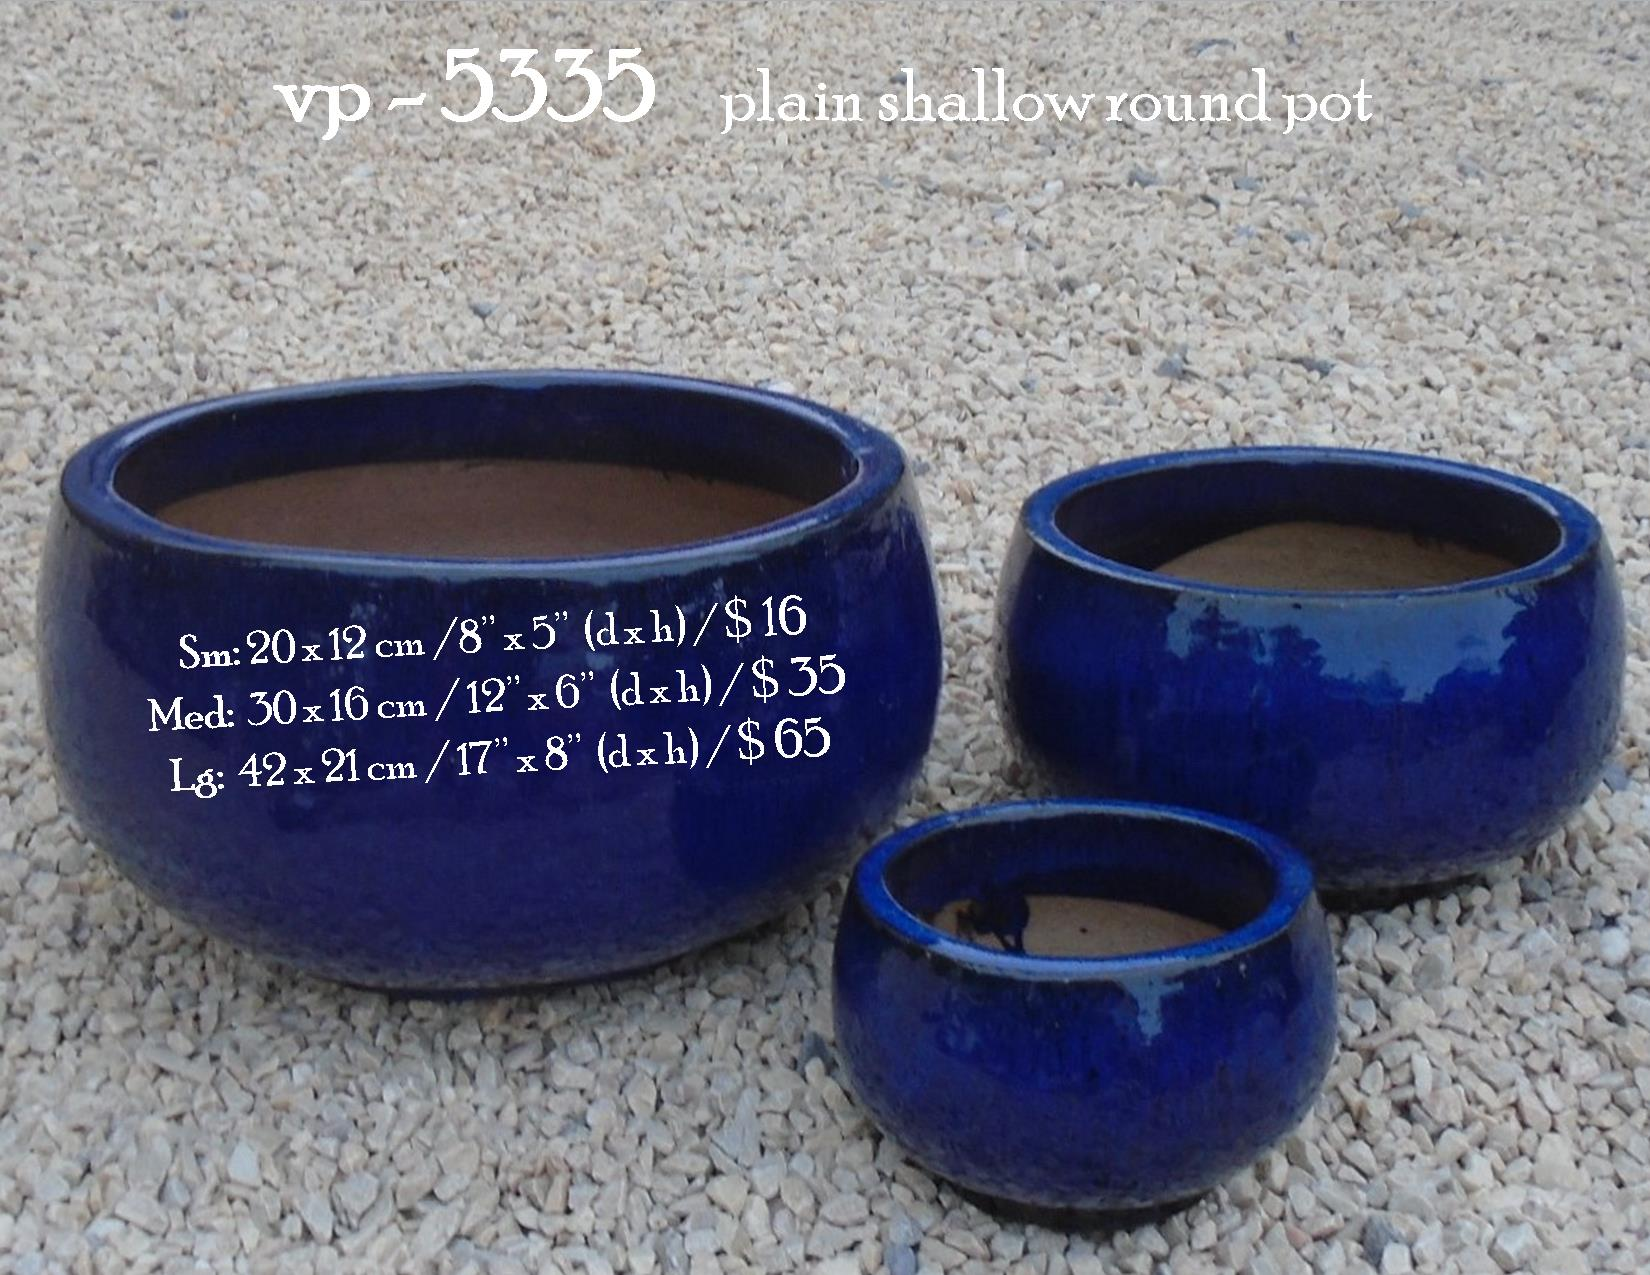 vp - 5335    plain shallow round pot   .